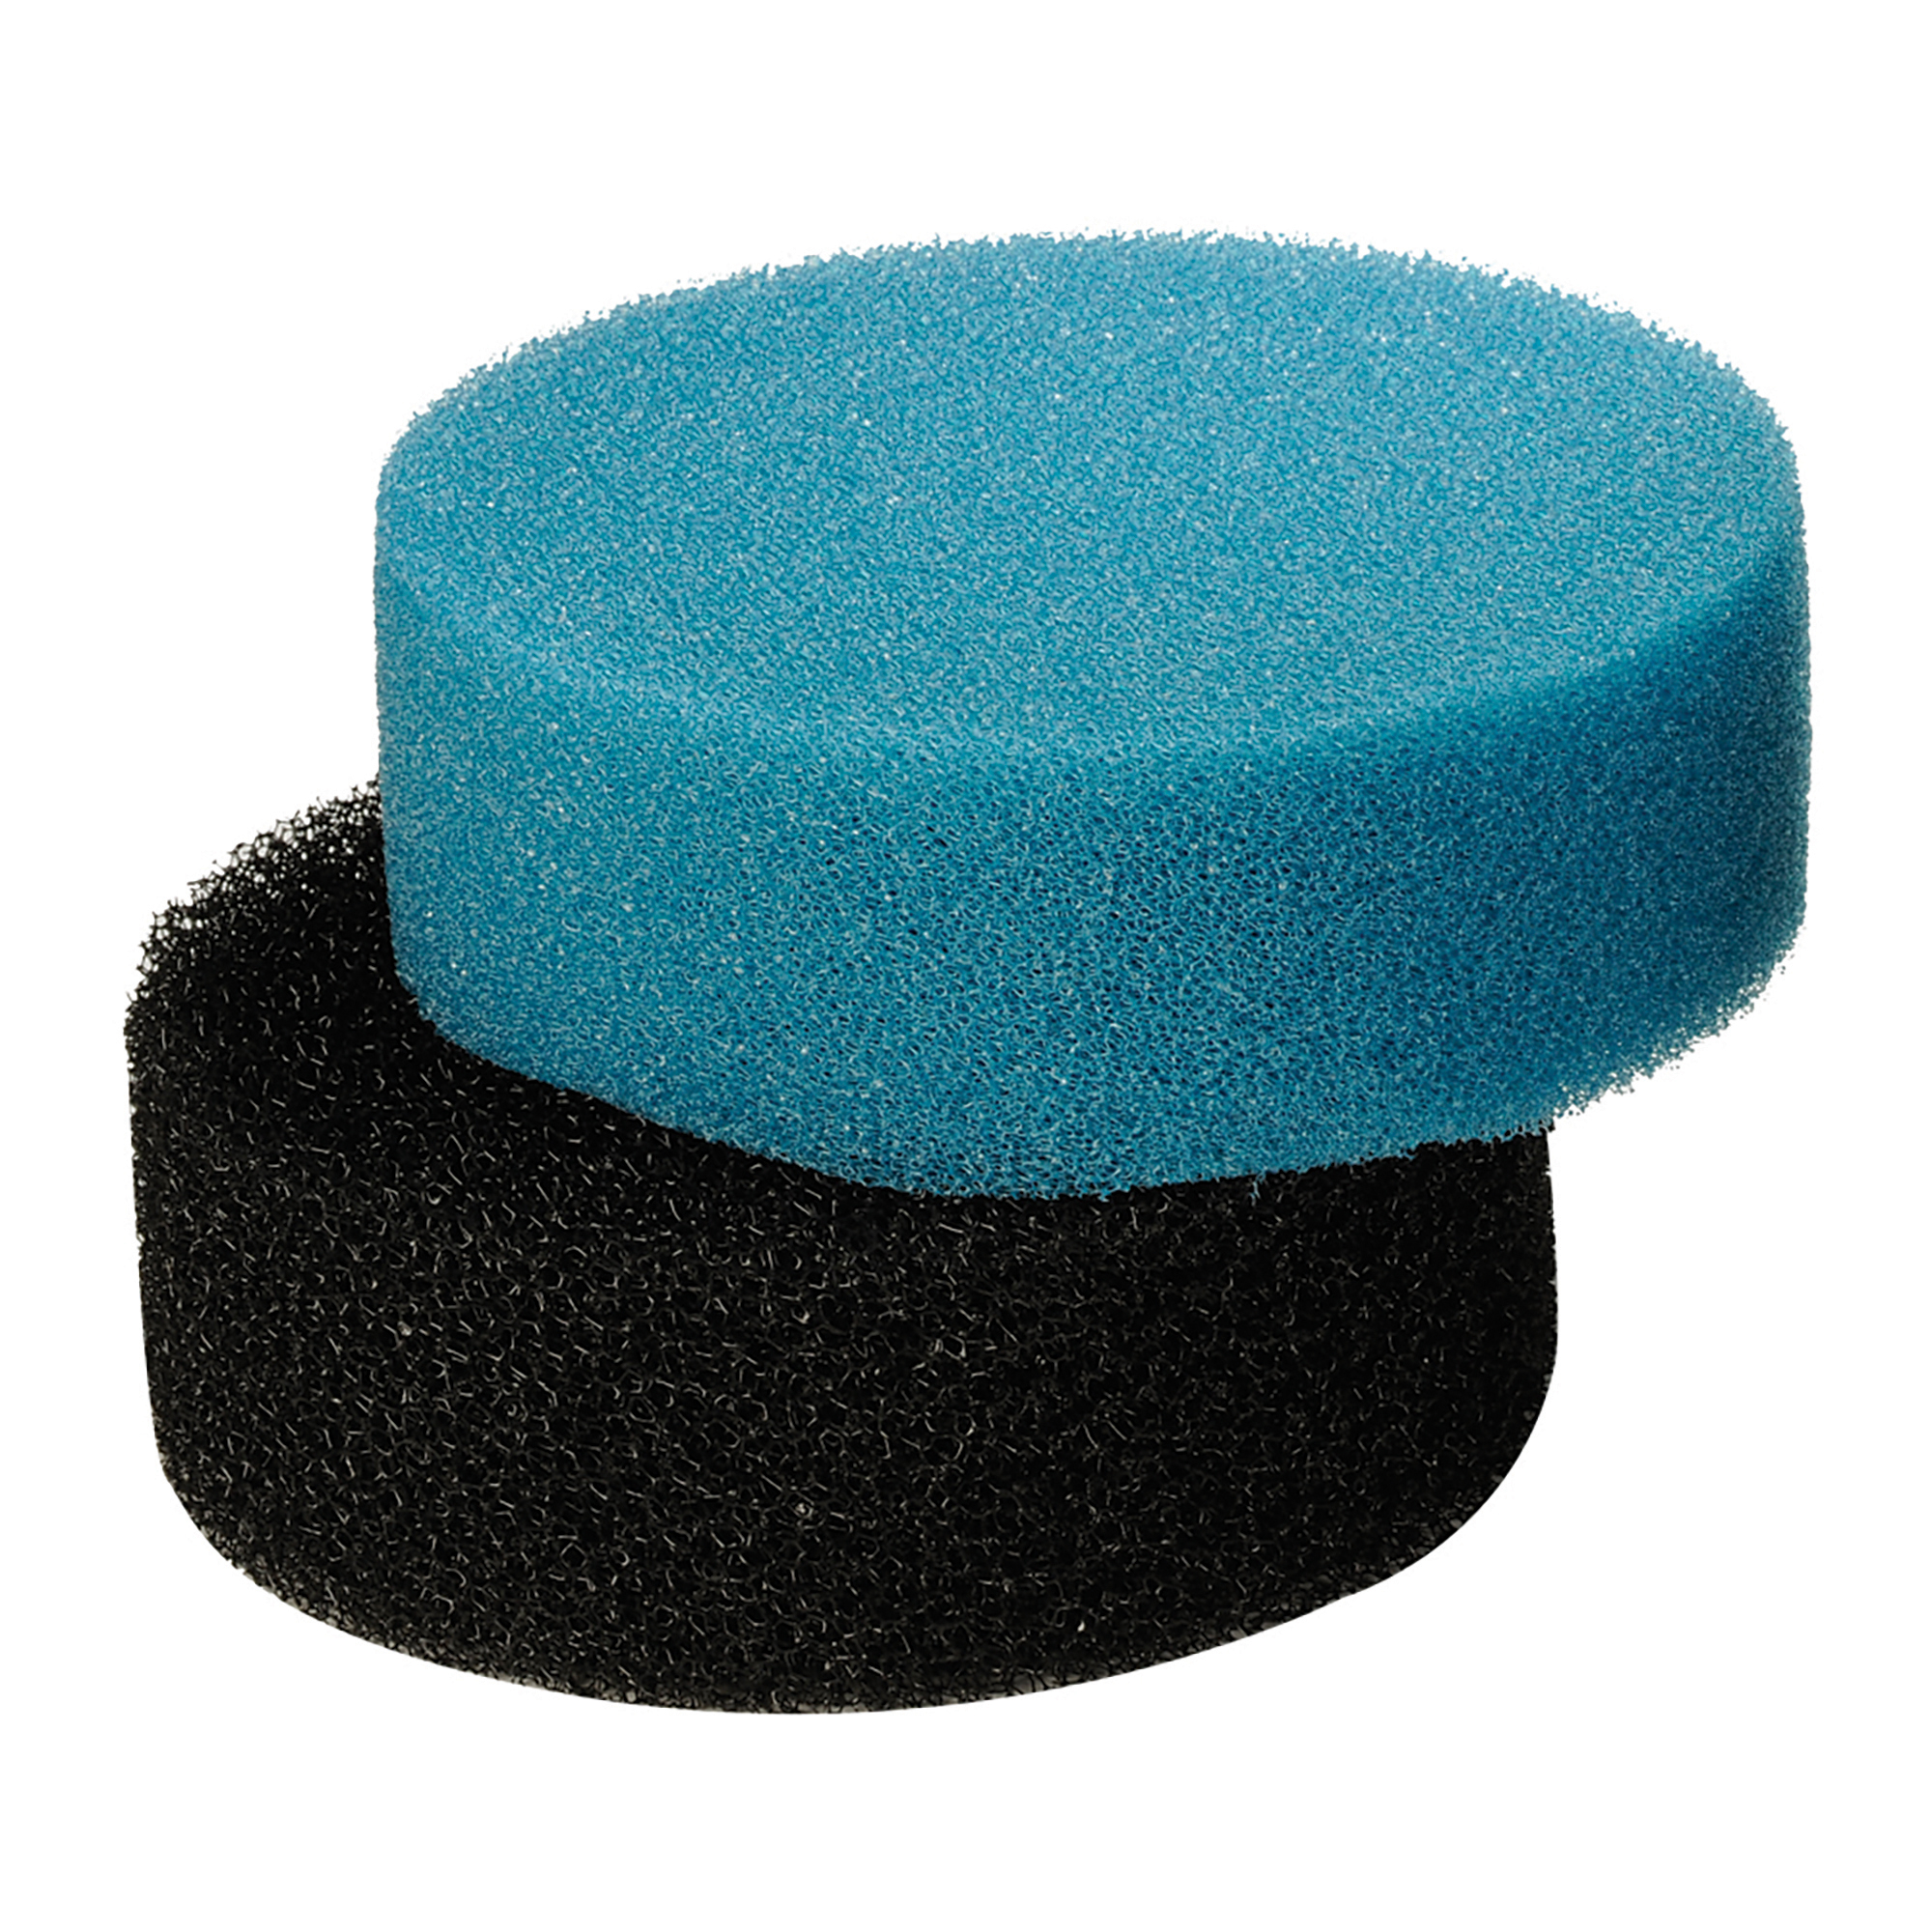 Replacement Filter Pads for PF850 and PF1200UV